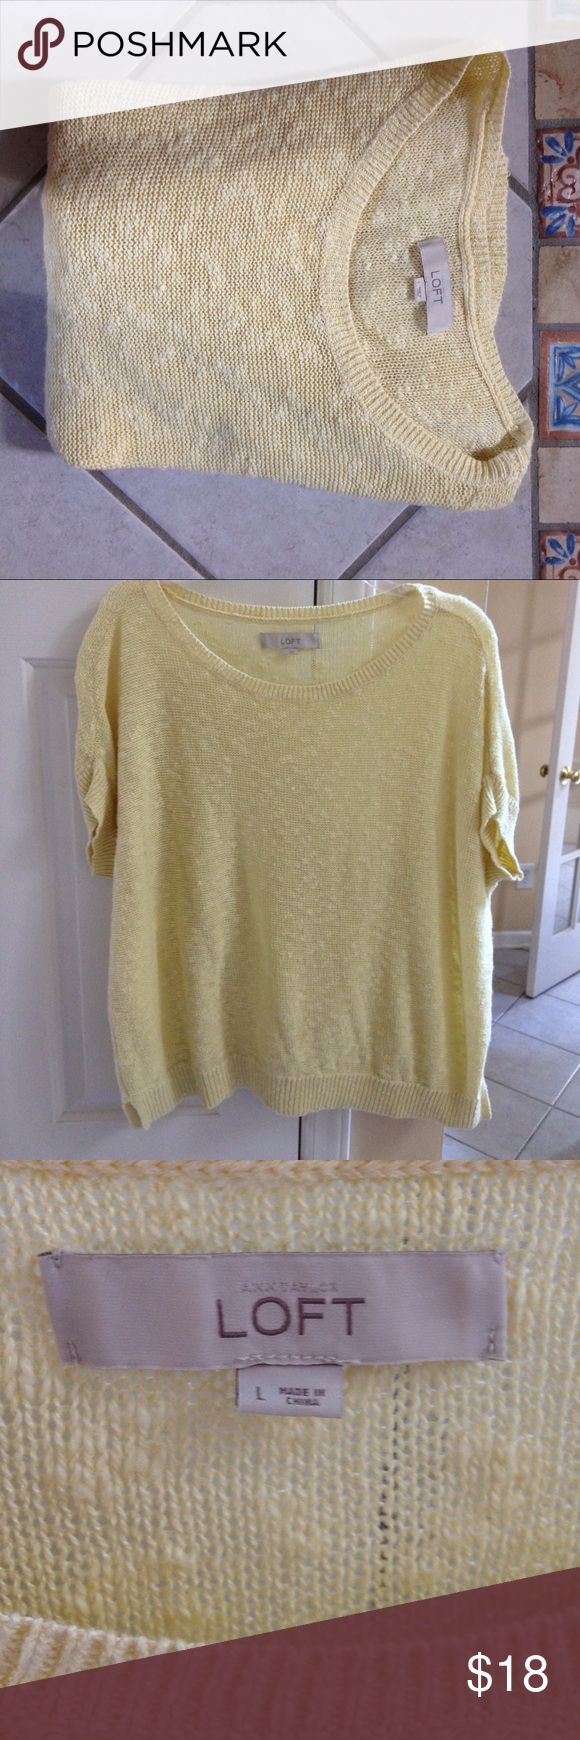 "💕Lightweight LOFT sweater💕 Beautiful yellow-chartreuse color, lightweight and short sleeves.  Light texture. Flattering side splits at the hem. Perfect for cool summer evenings. Underarm to underarm is 24"". Shoulder to hem is 24.5"".  Linen and cotton. LOFT Tops"